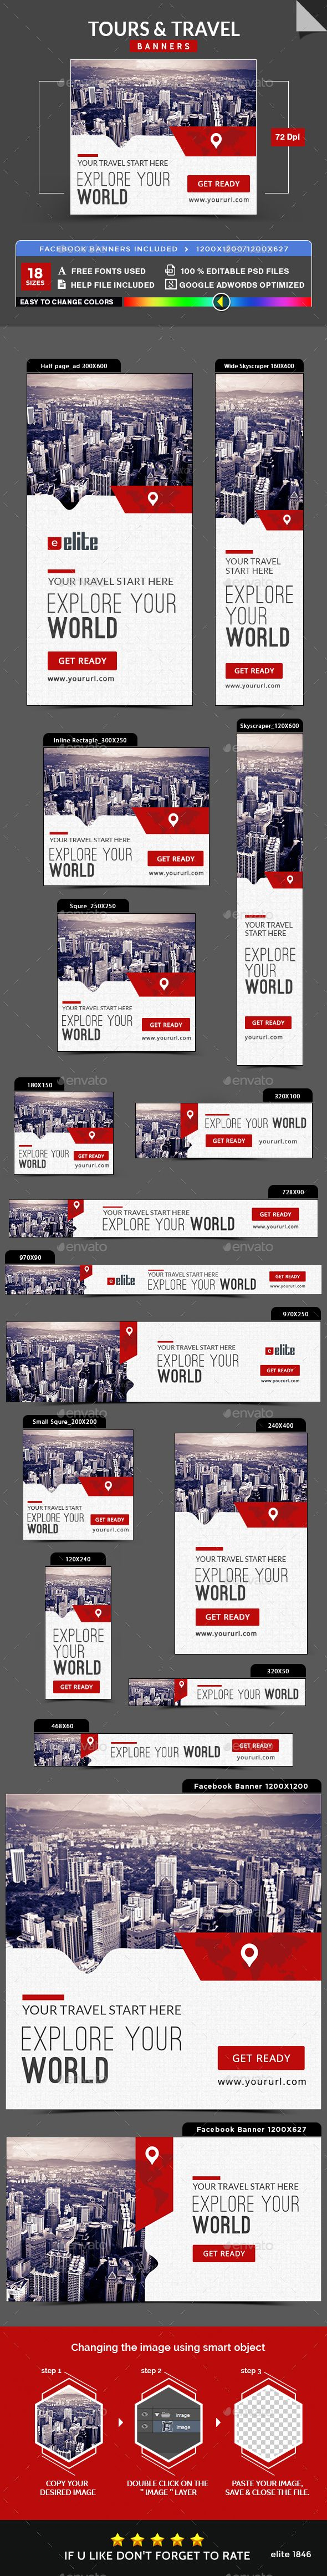 Tours & Travel Banners — Photoshop PSD #coupon #trip • Available here → https://graphicriver.net/item/tours-travel-banners/18062461?ref=pxcr